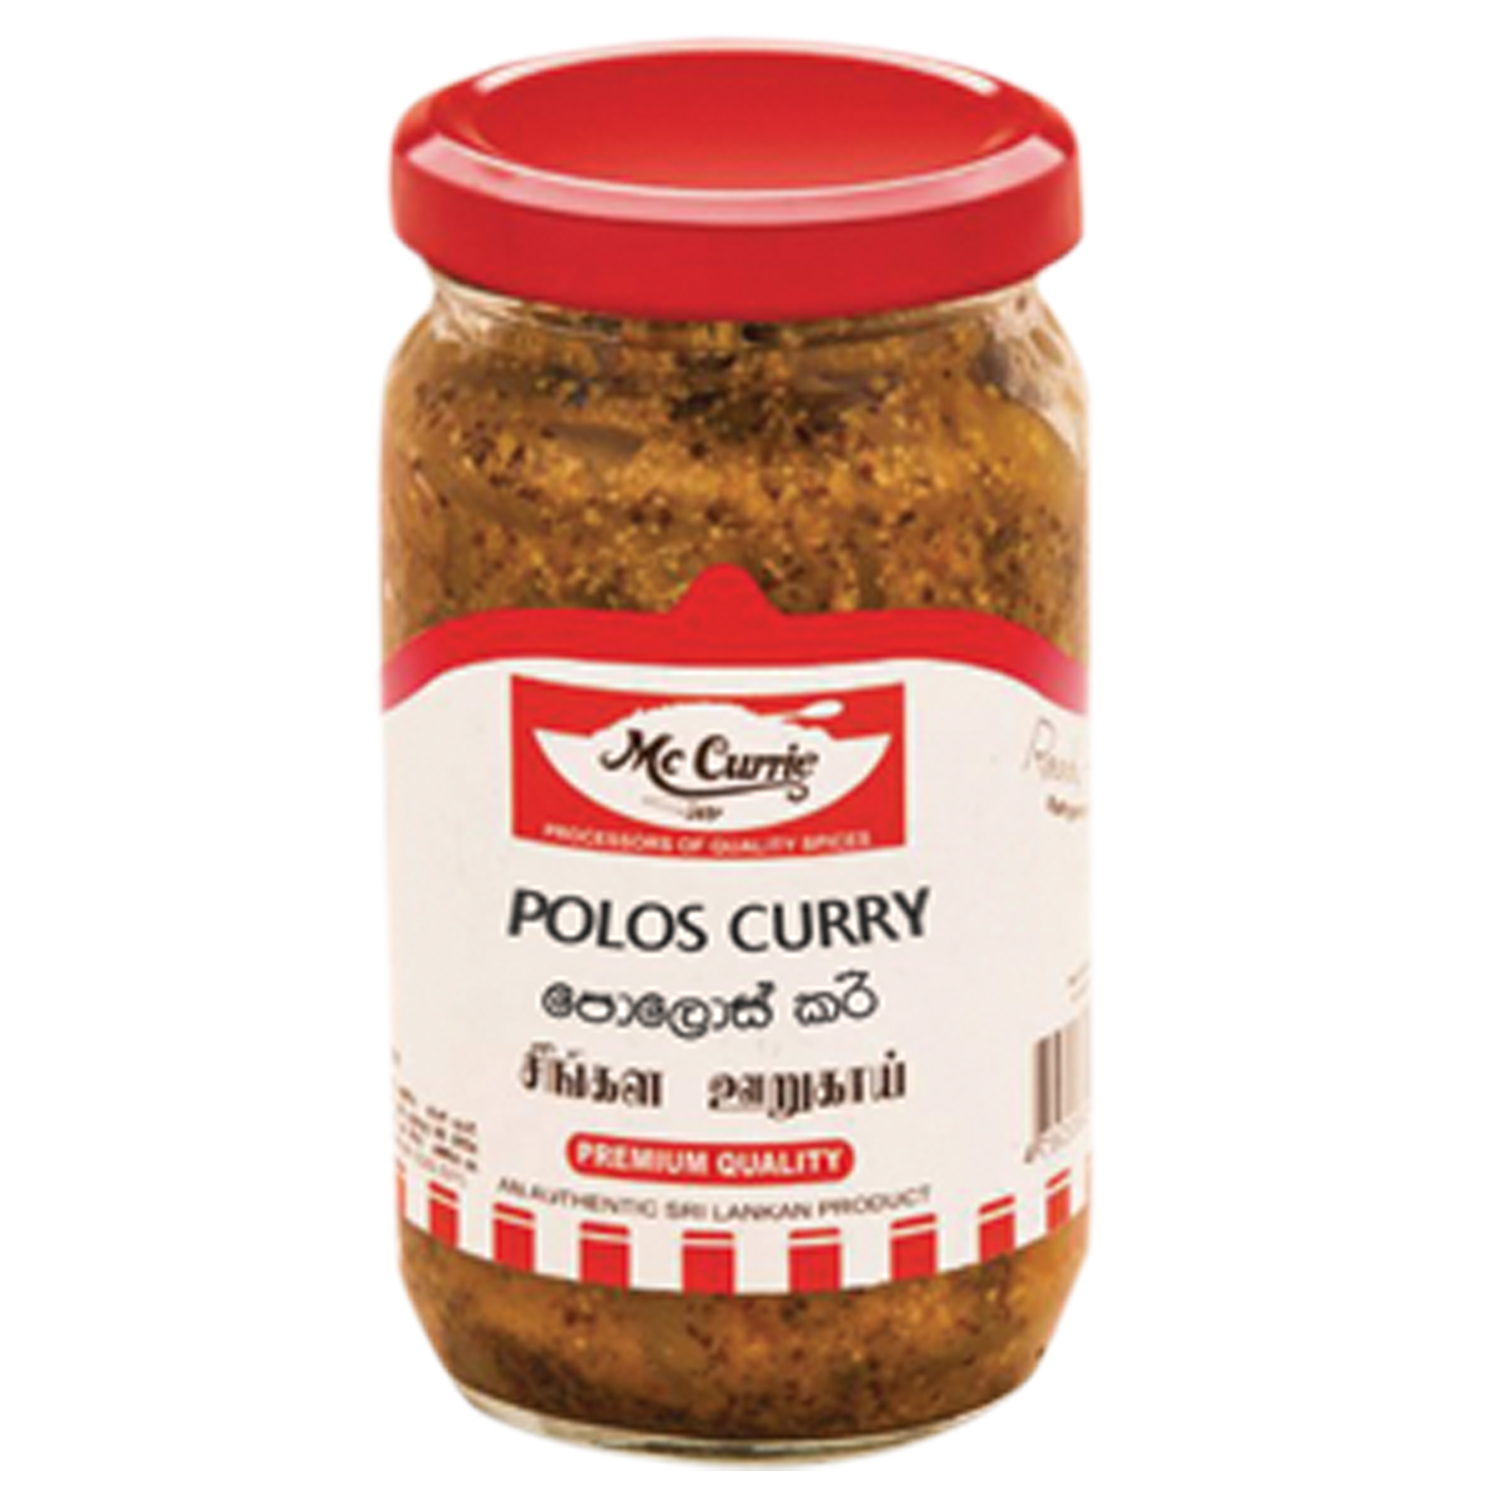 polos curry - mc currie 350 g